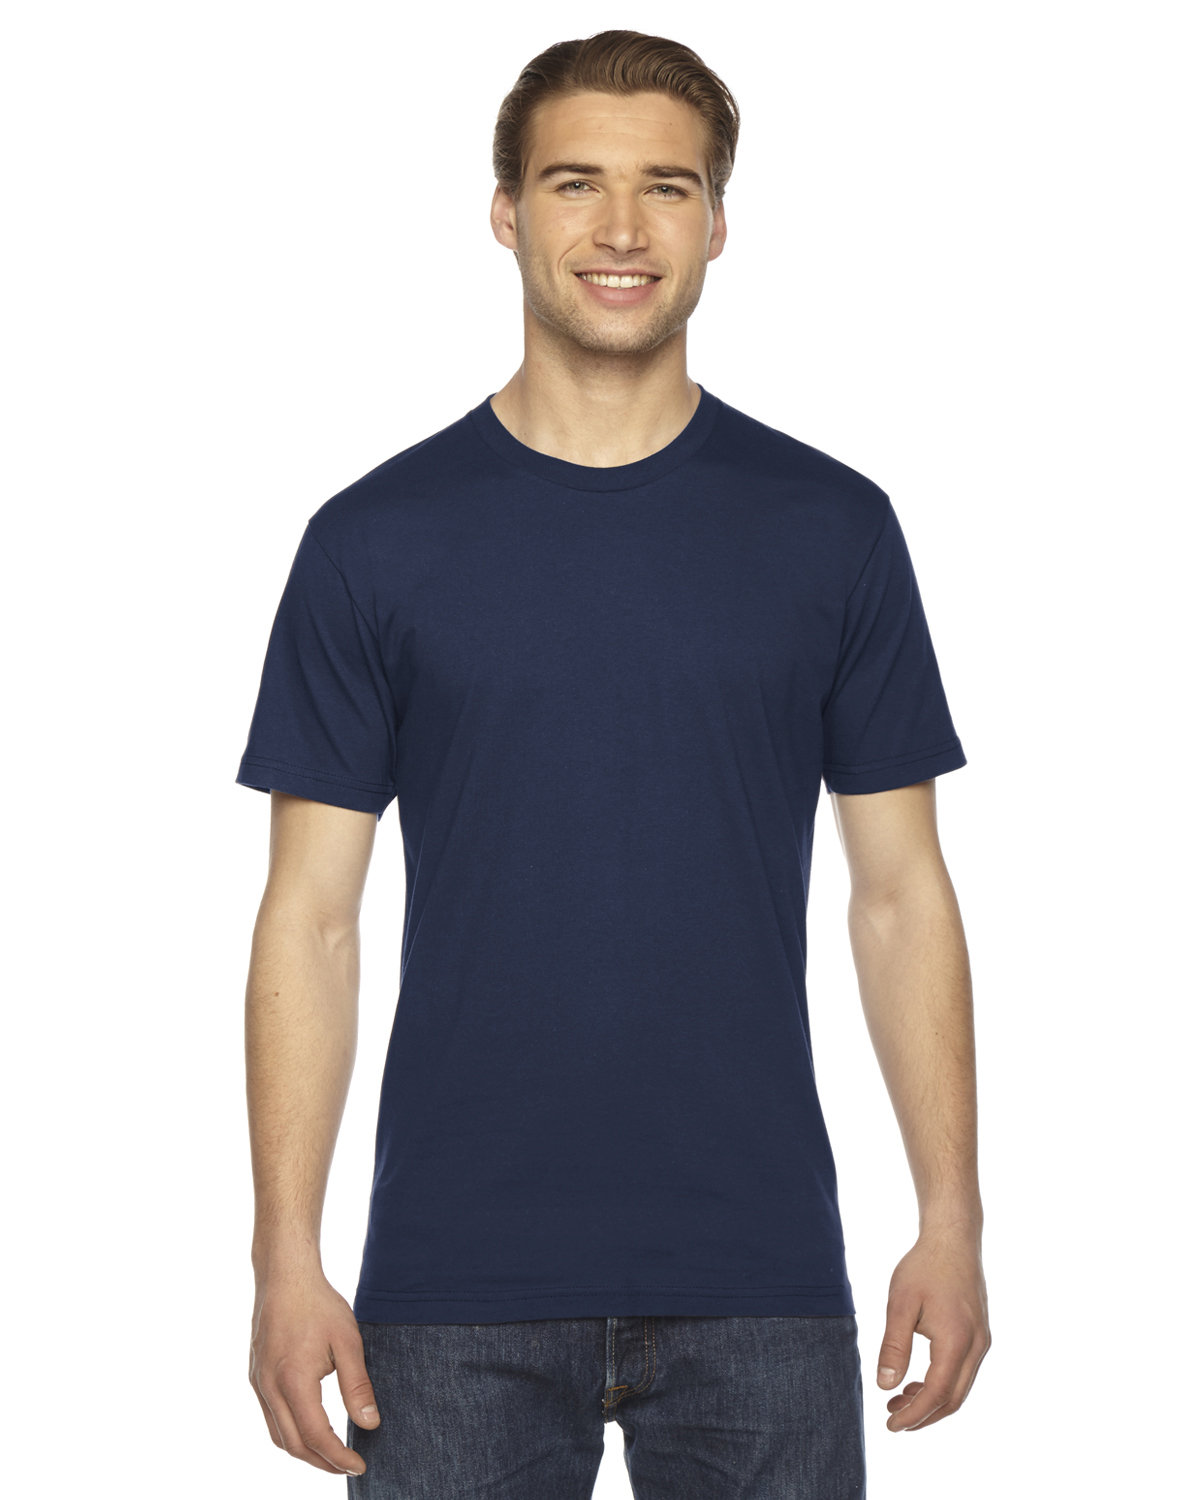 American Apparel Unisex Fine Jersey USA Made T-Shirt NAVY